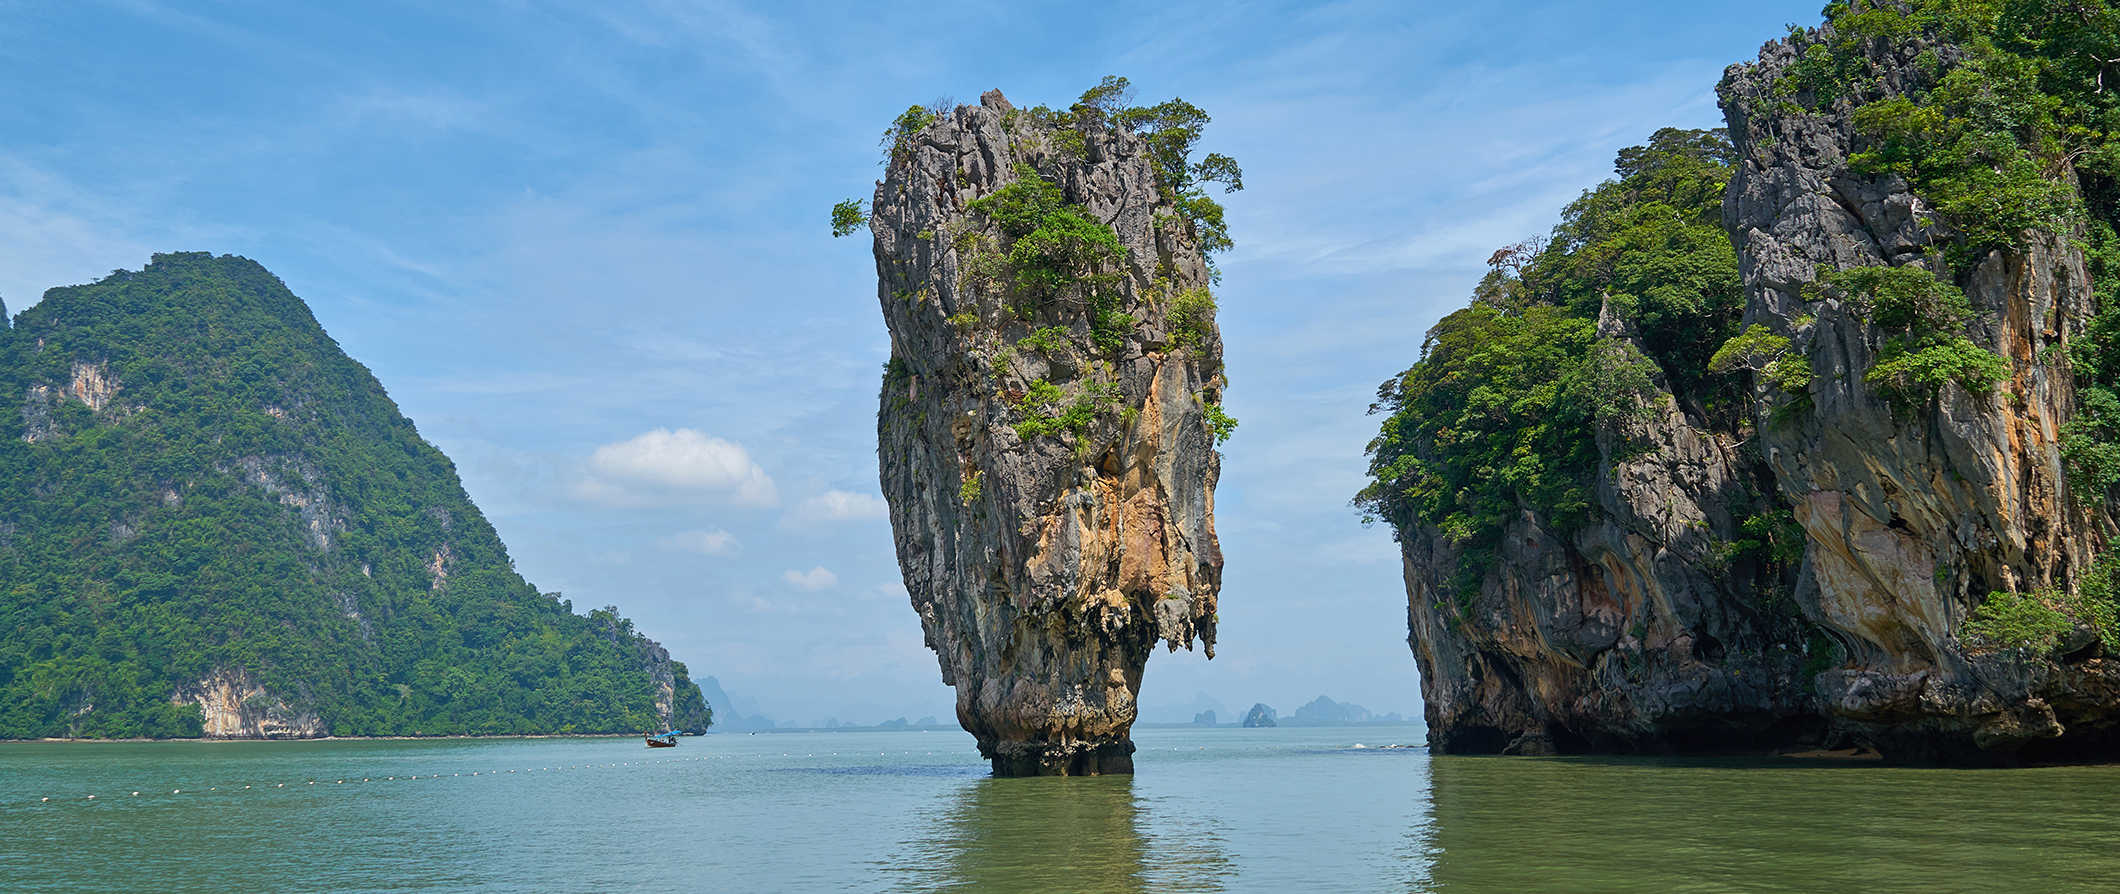 limestone formations in Phuket